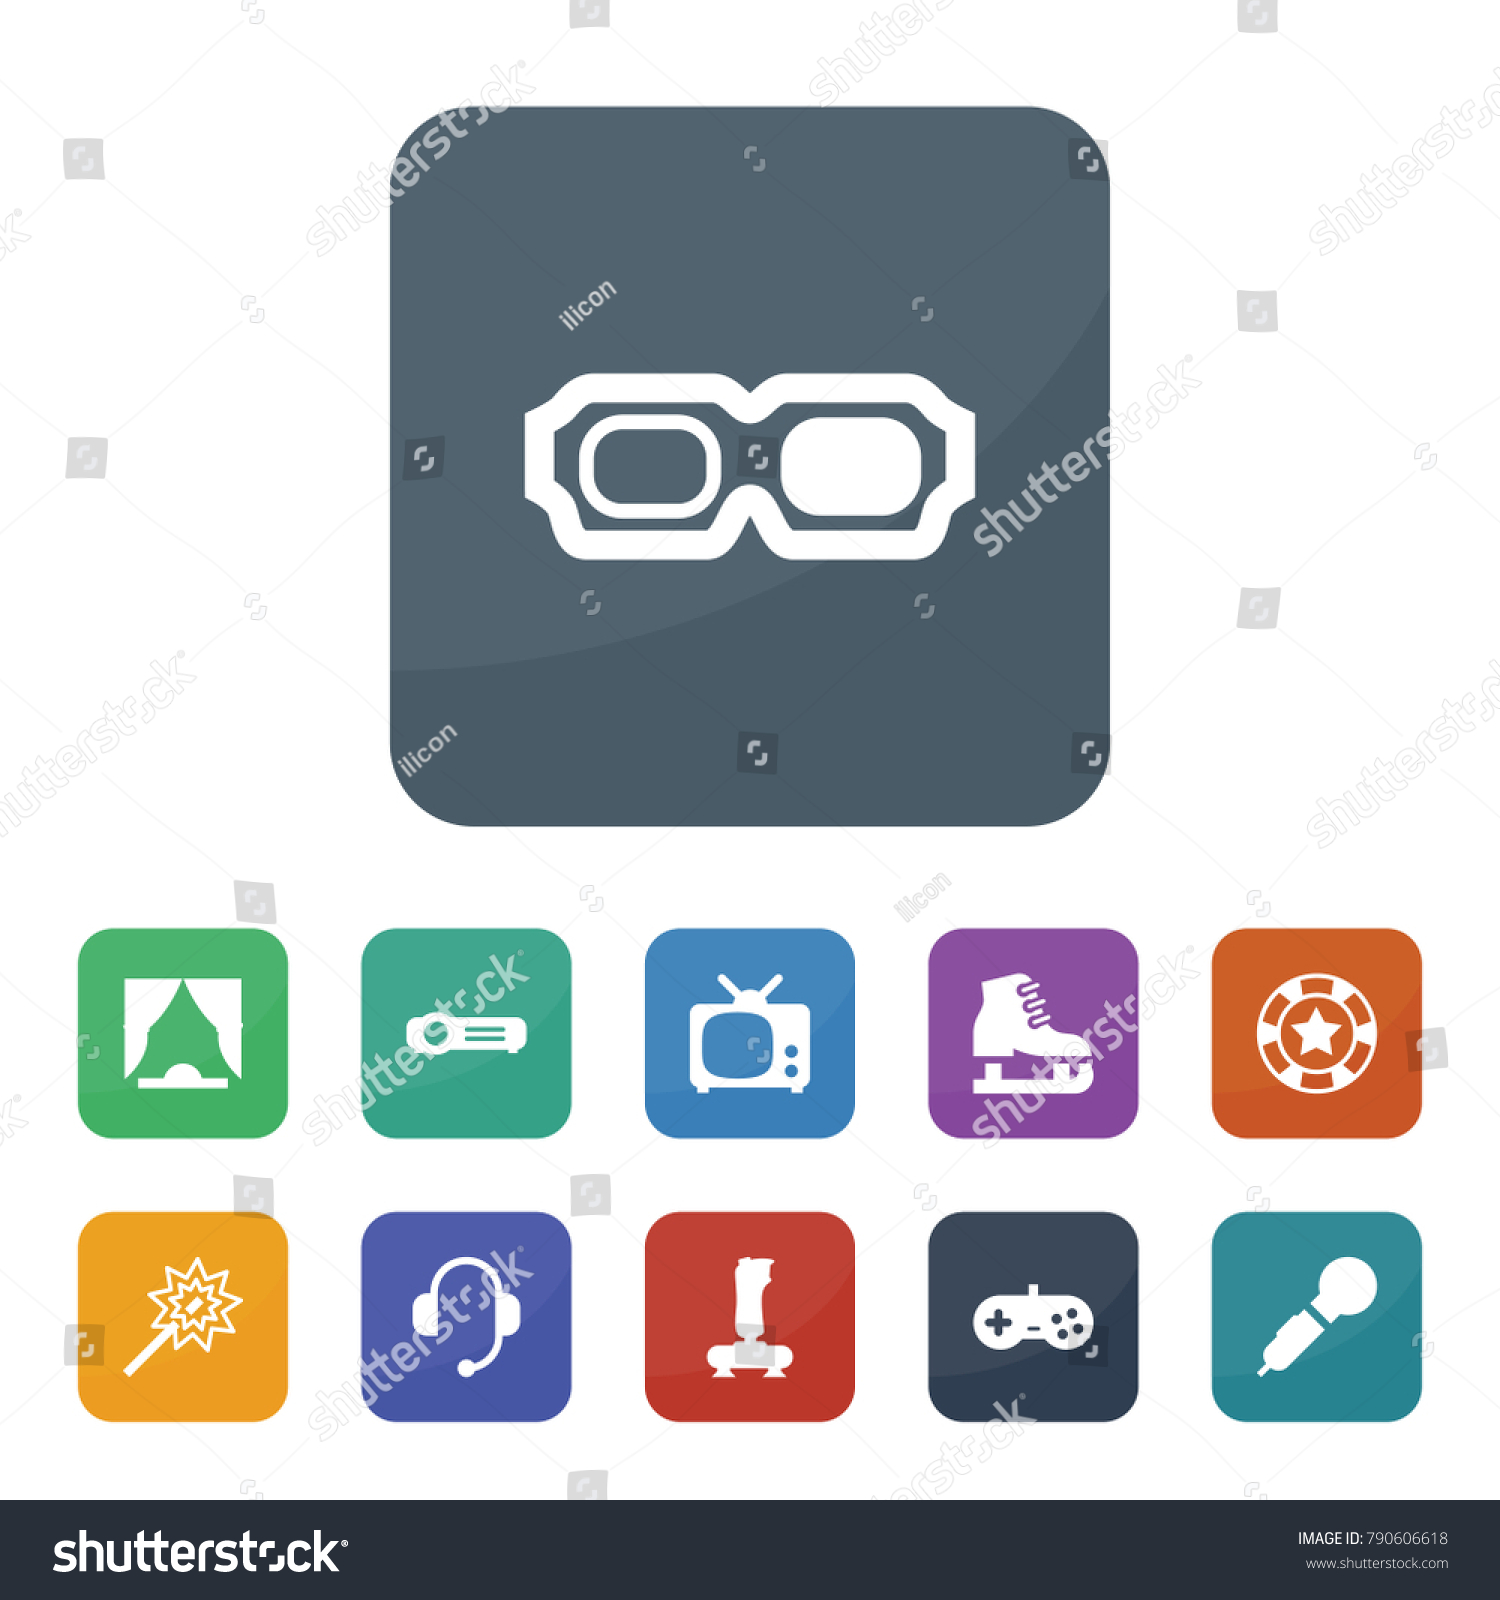 Tv Wand Glas Entertainment Icons Vector Collection Filled Entertainment Stock